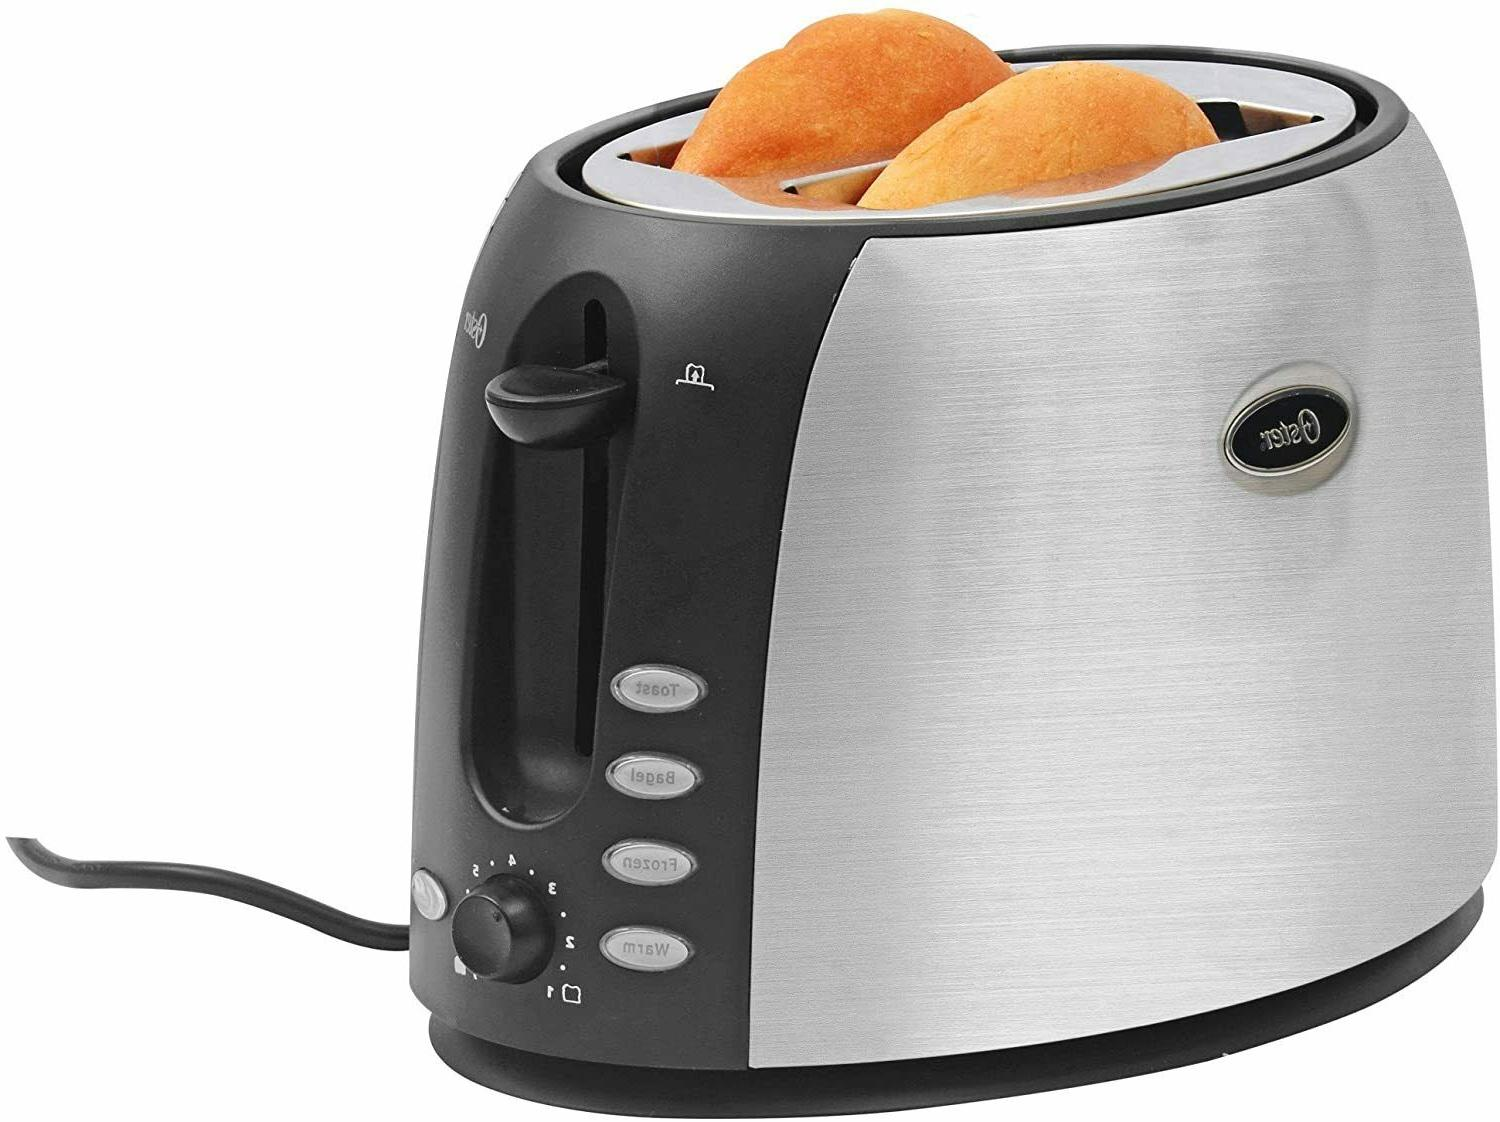 New Oster 2 Slice Toaster